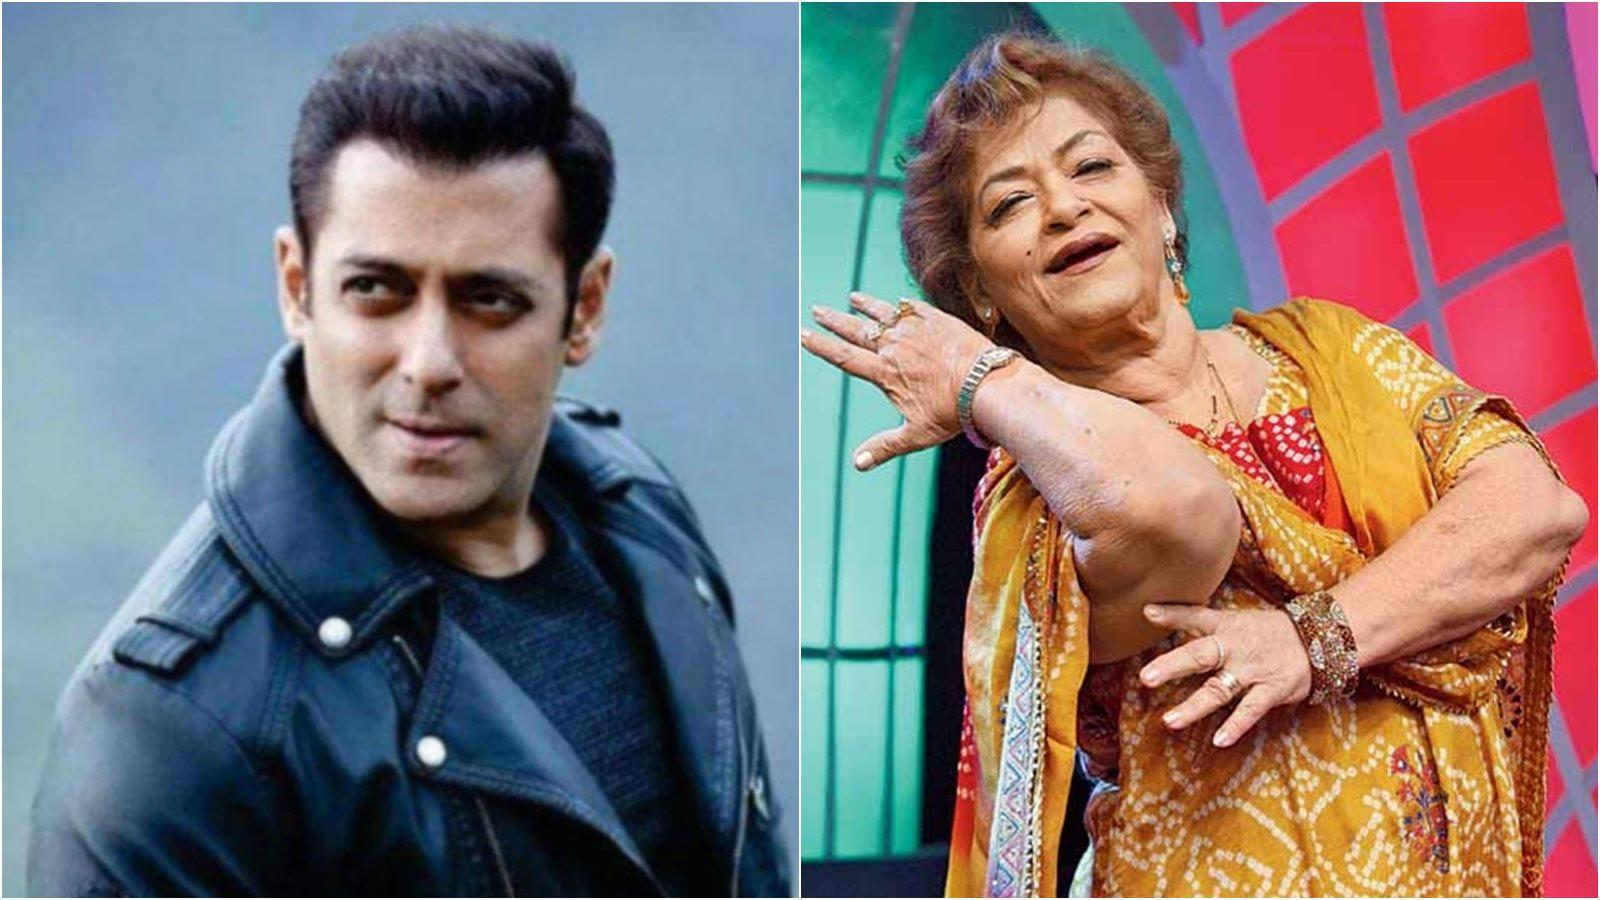 Salman Khan comes to choreographer Saroj Khan's rescue after she runs out of work